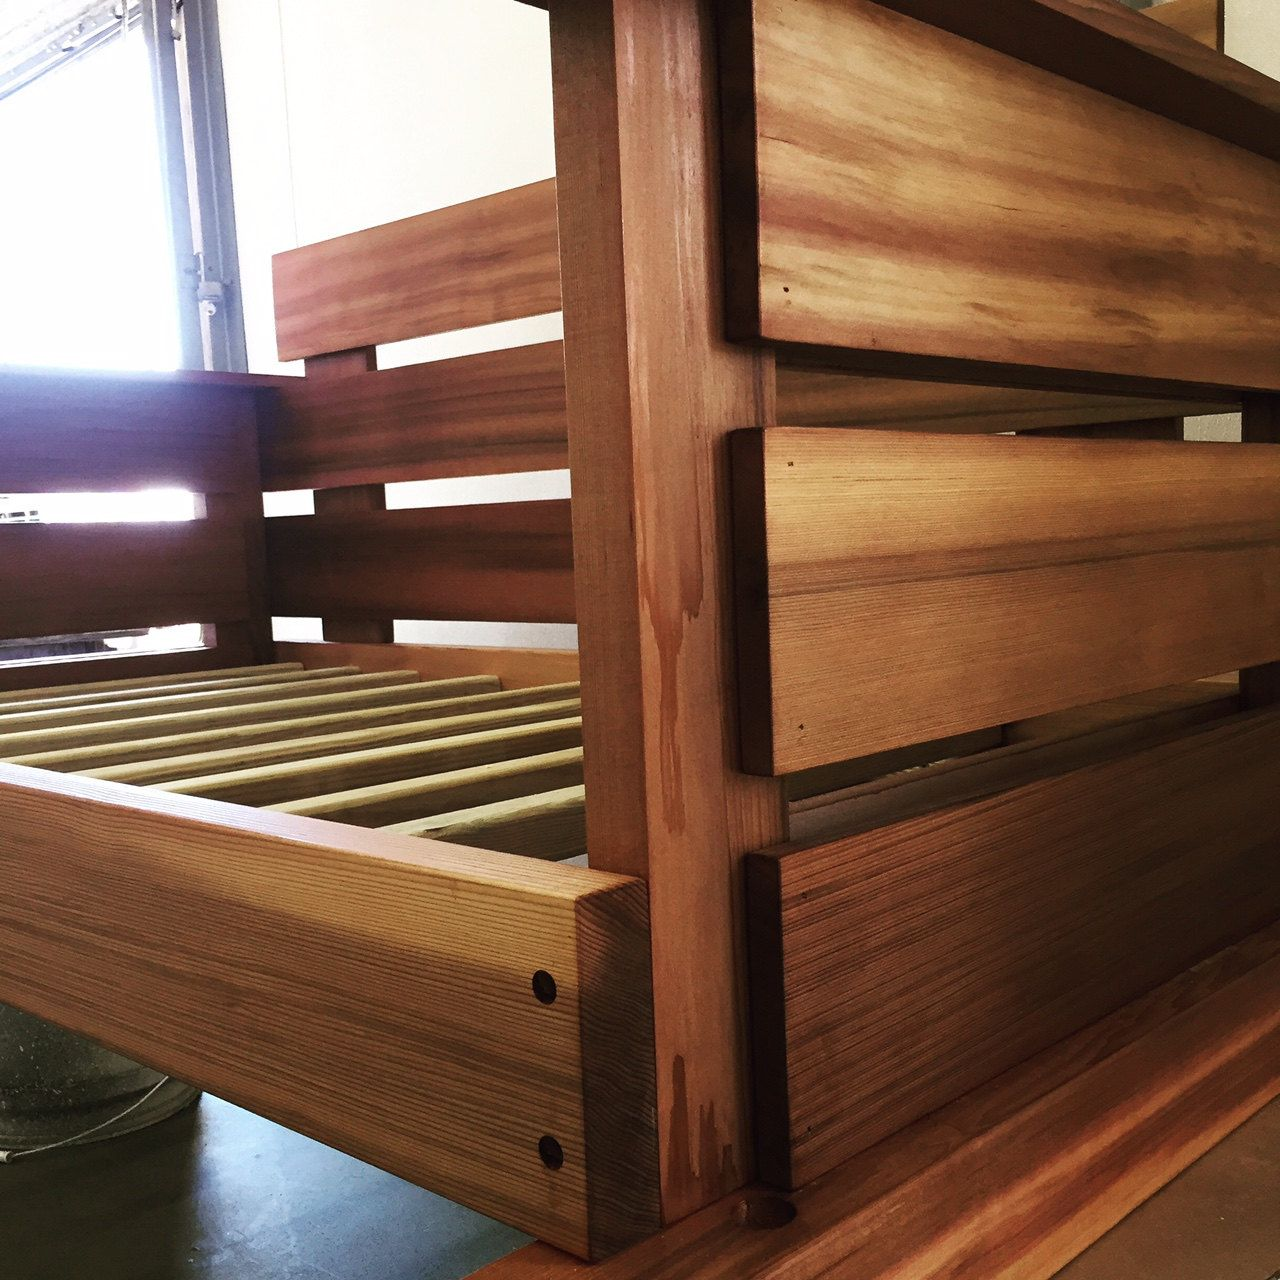 Our Swing Beds come standard in a crib, twin, full, queen